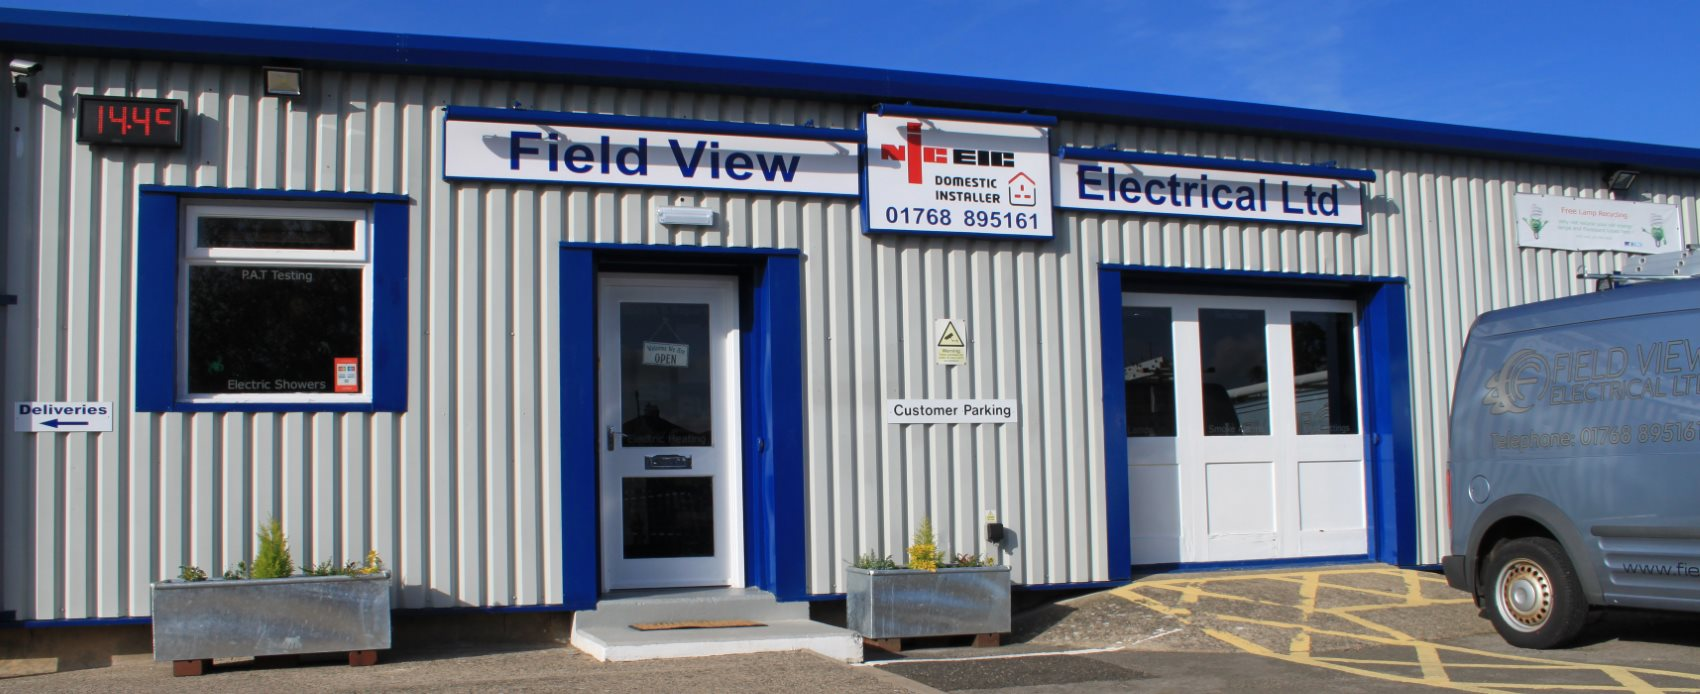 About Field View Electrical Contractors in Penrith, Cumbria